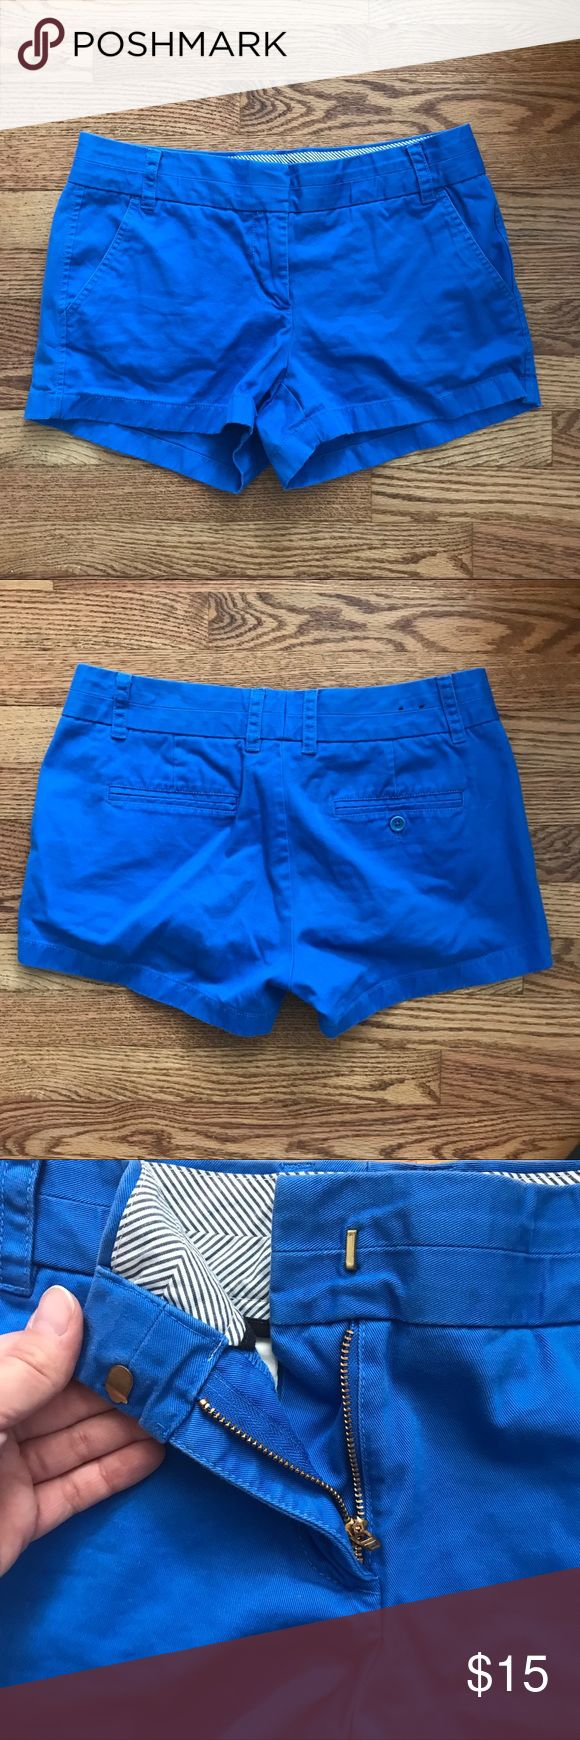 J. Crew Chino Royal Blue Shorts Size 6 Great condition. Worn a couple of summers. Naturally faded a bit. Super comfy! Front and back pockets. 100% cotton. J. Crew Shorts